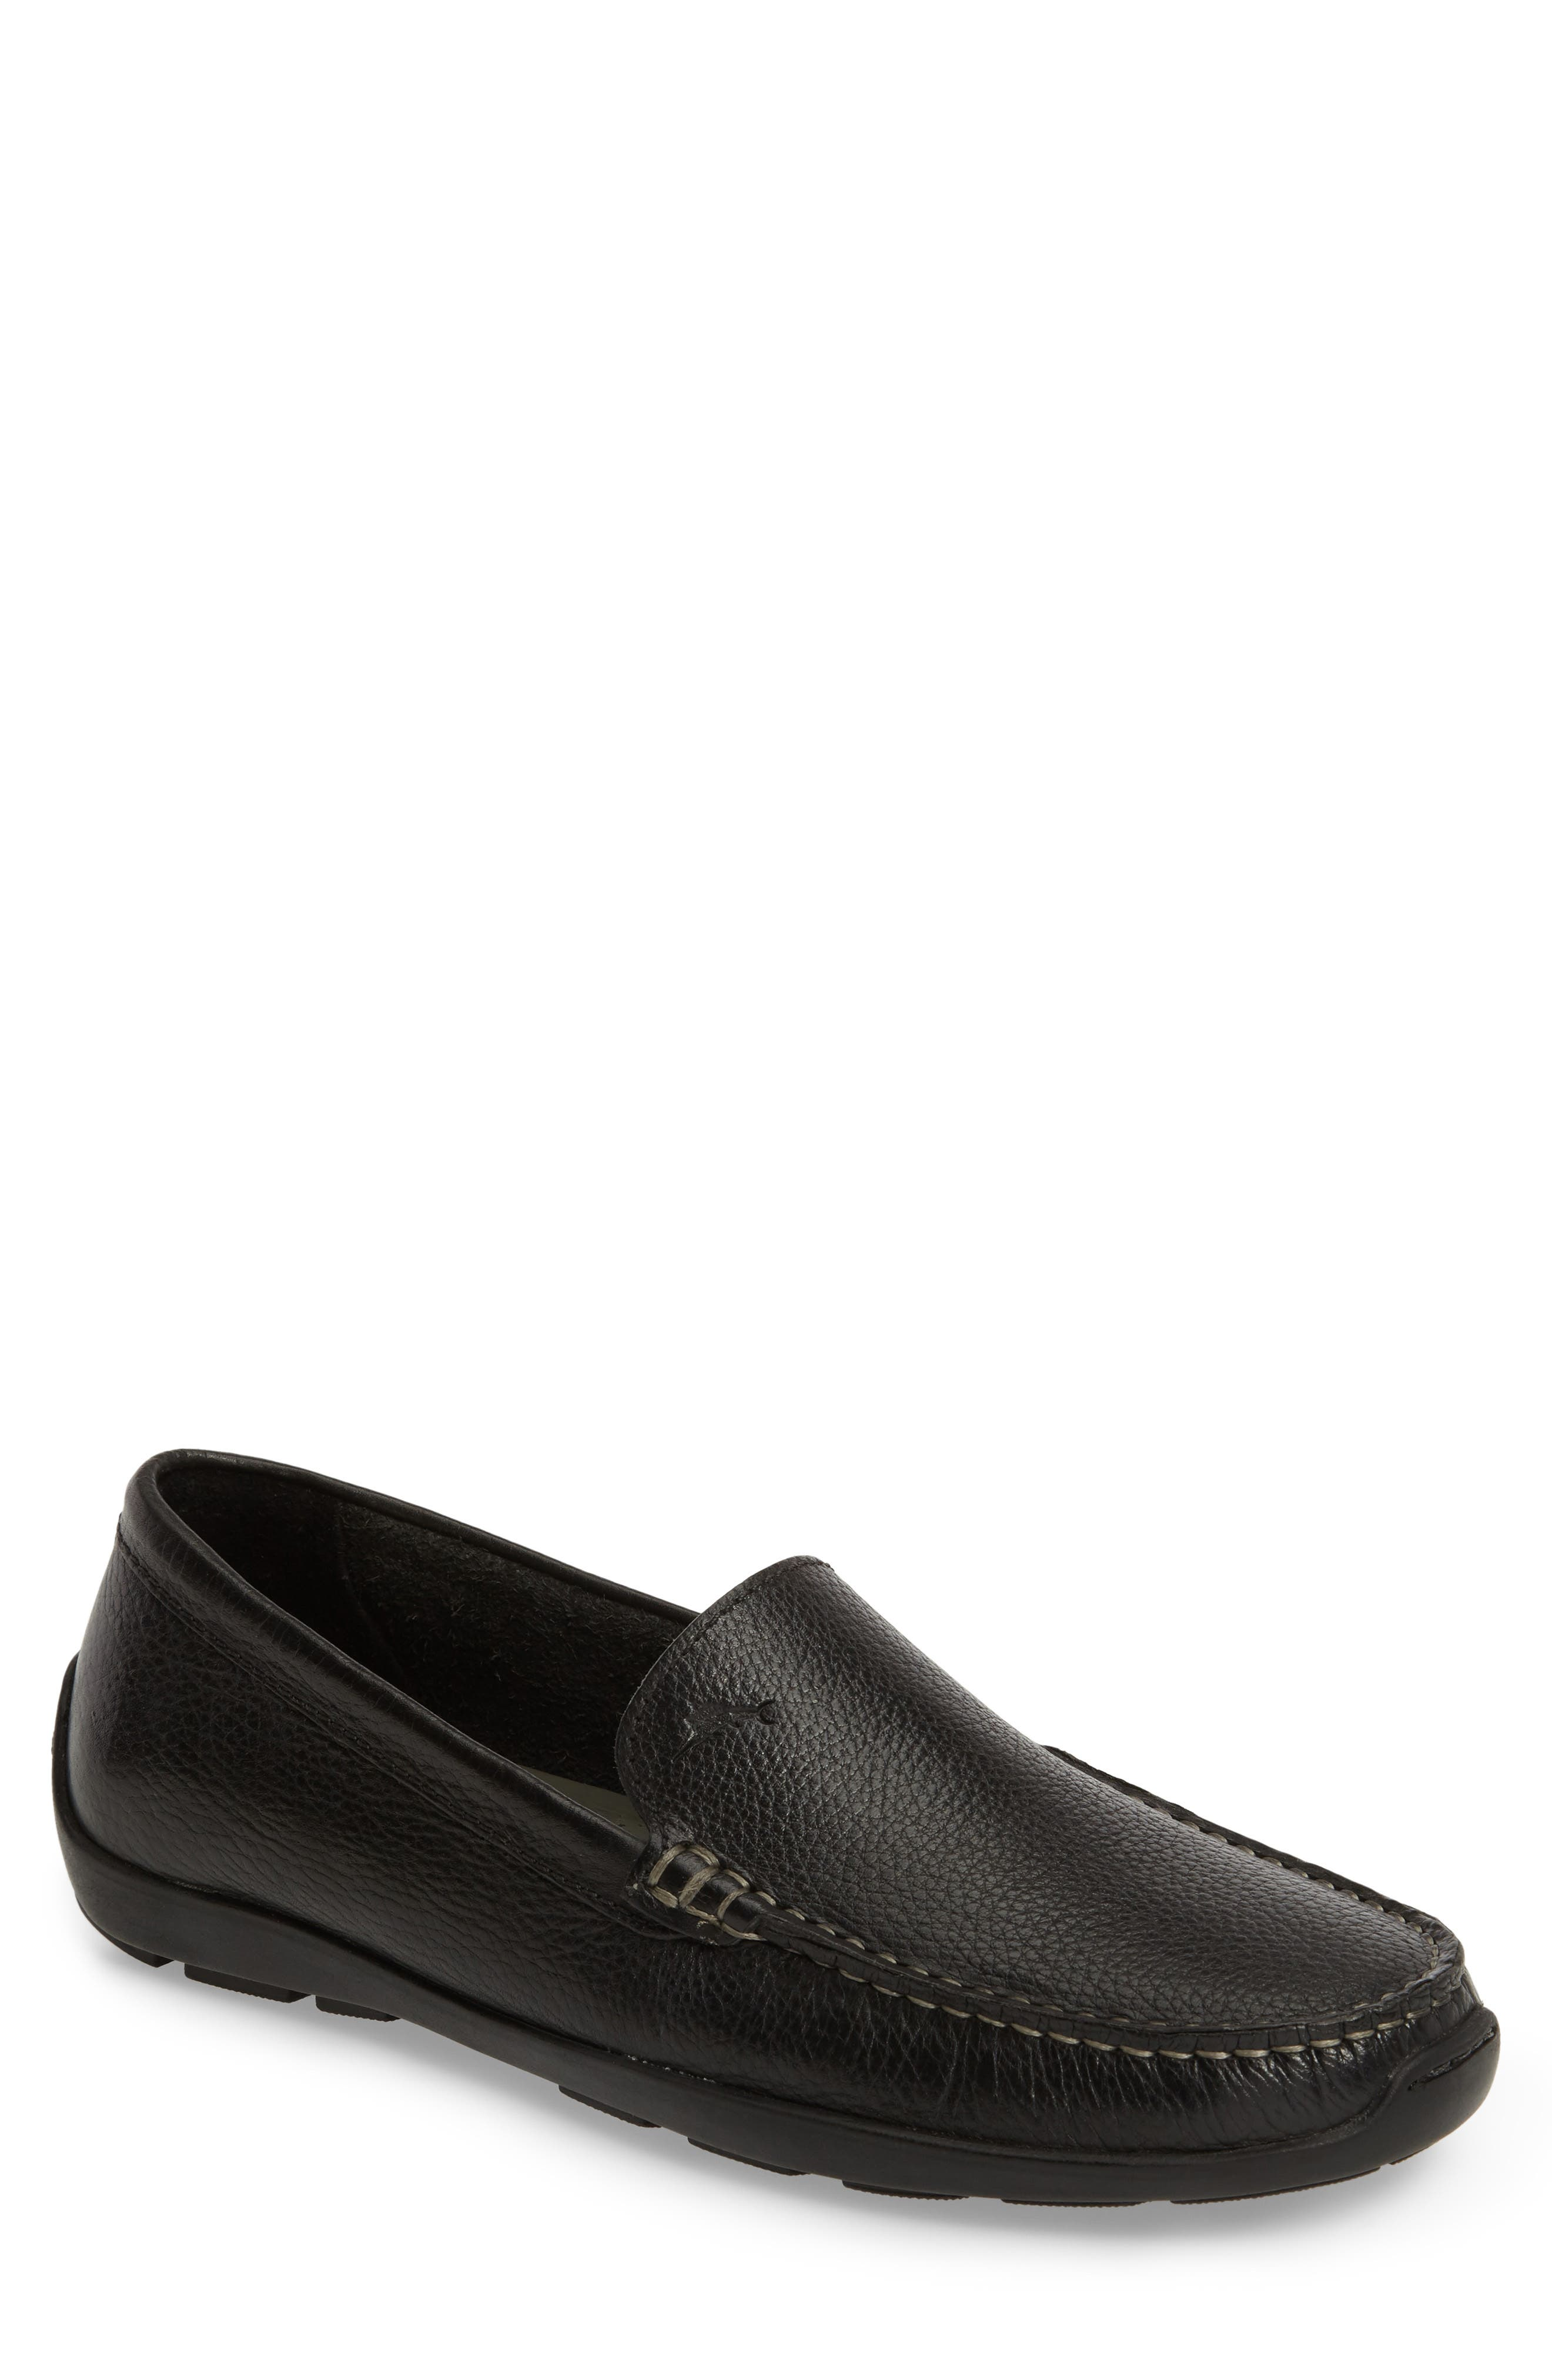 Orion Venetian Loafer,                             Main thumbnail 1, color,                             BLACK LEATHER